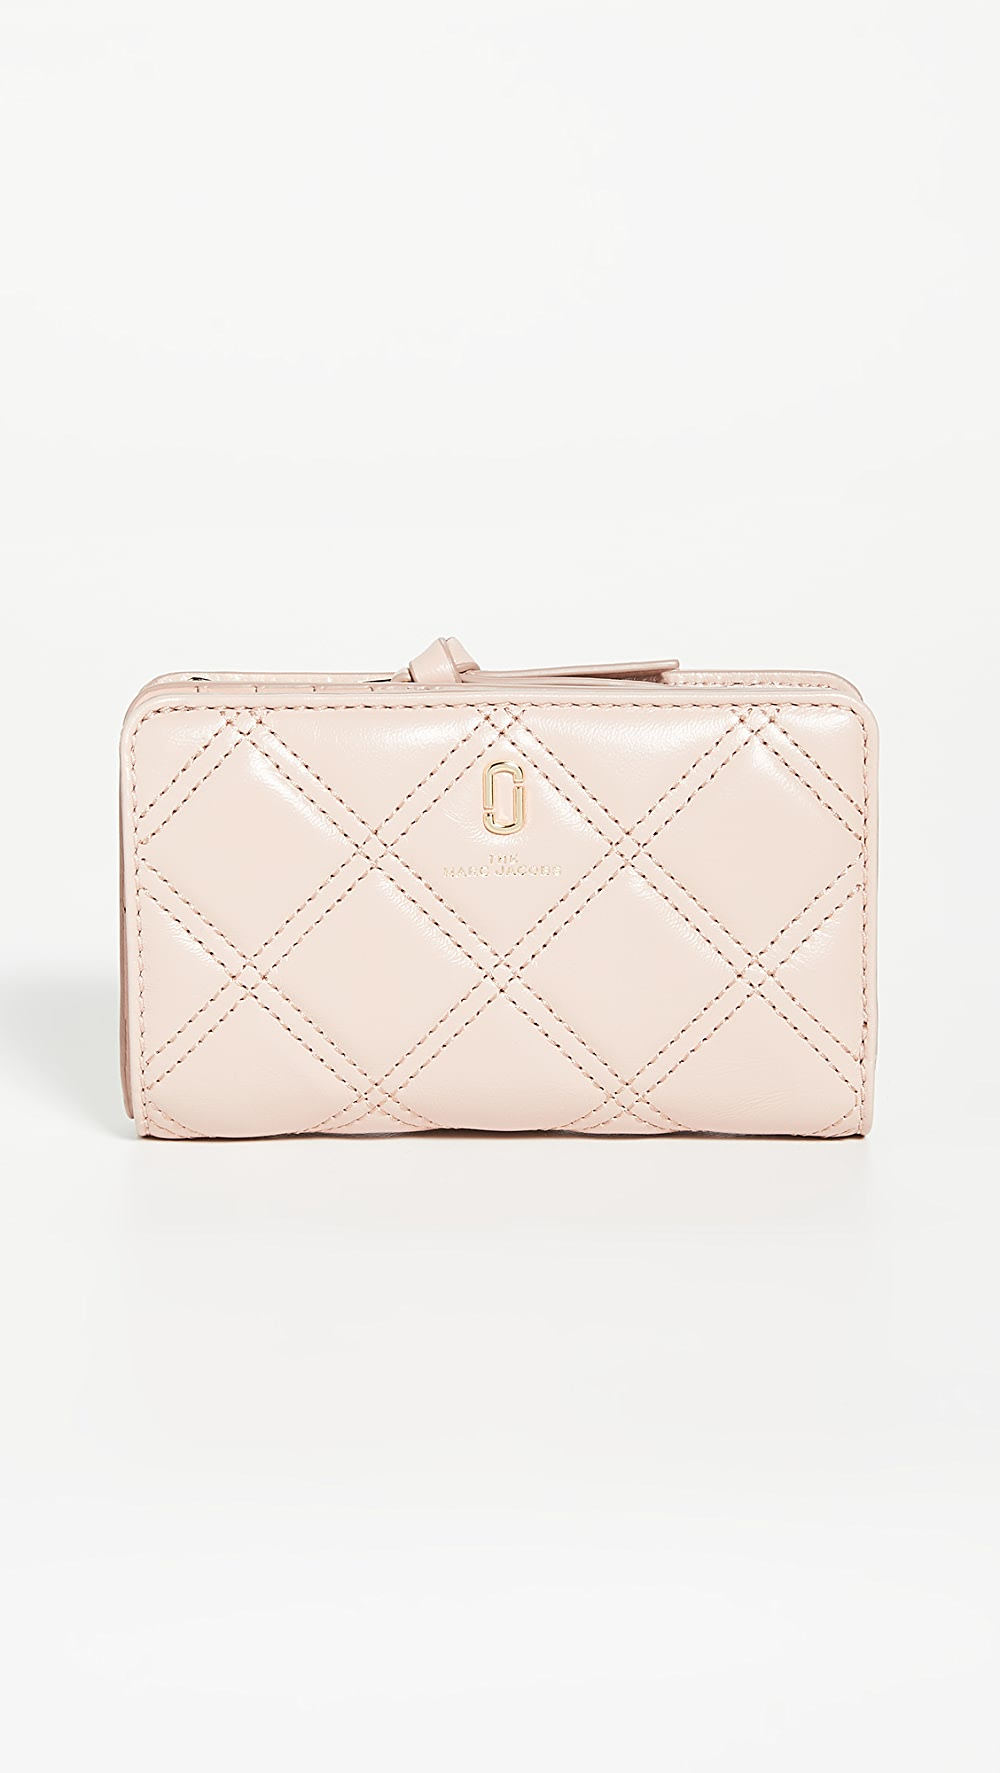 Well-Educated The Marc Jacobs - The Quilted Softshot Compact Wallet Easy To Lubricate